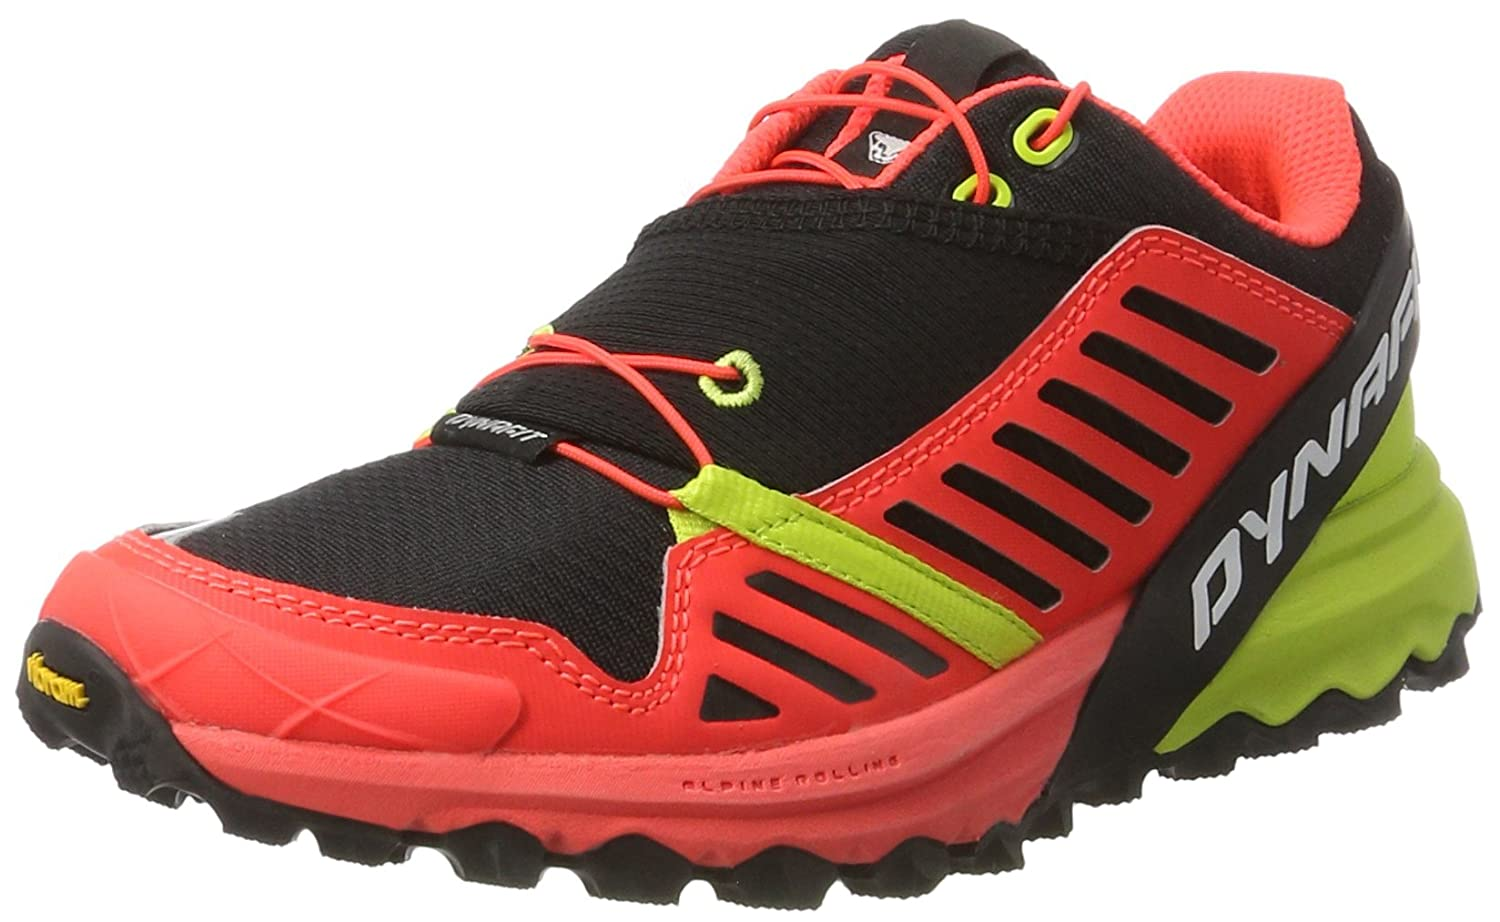 Dynafit Women's Alpine Pro Trail Running Shoes B01NAVAAGO 8.5 B(M) US|Black / Lime Punch